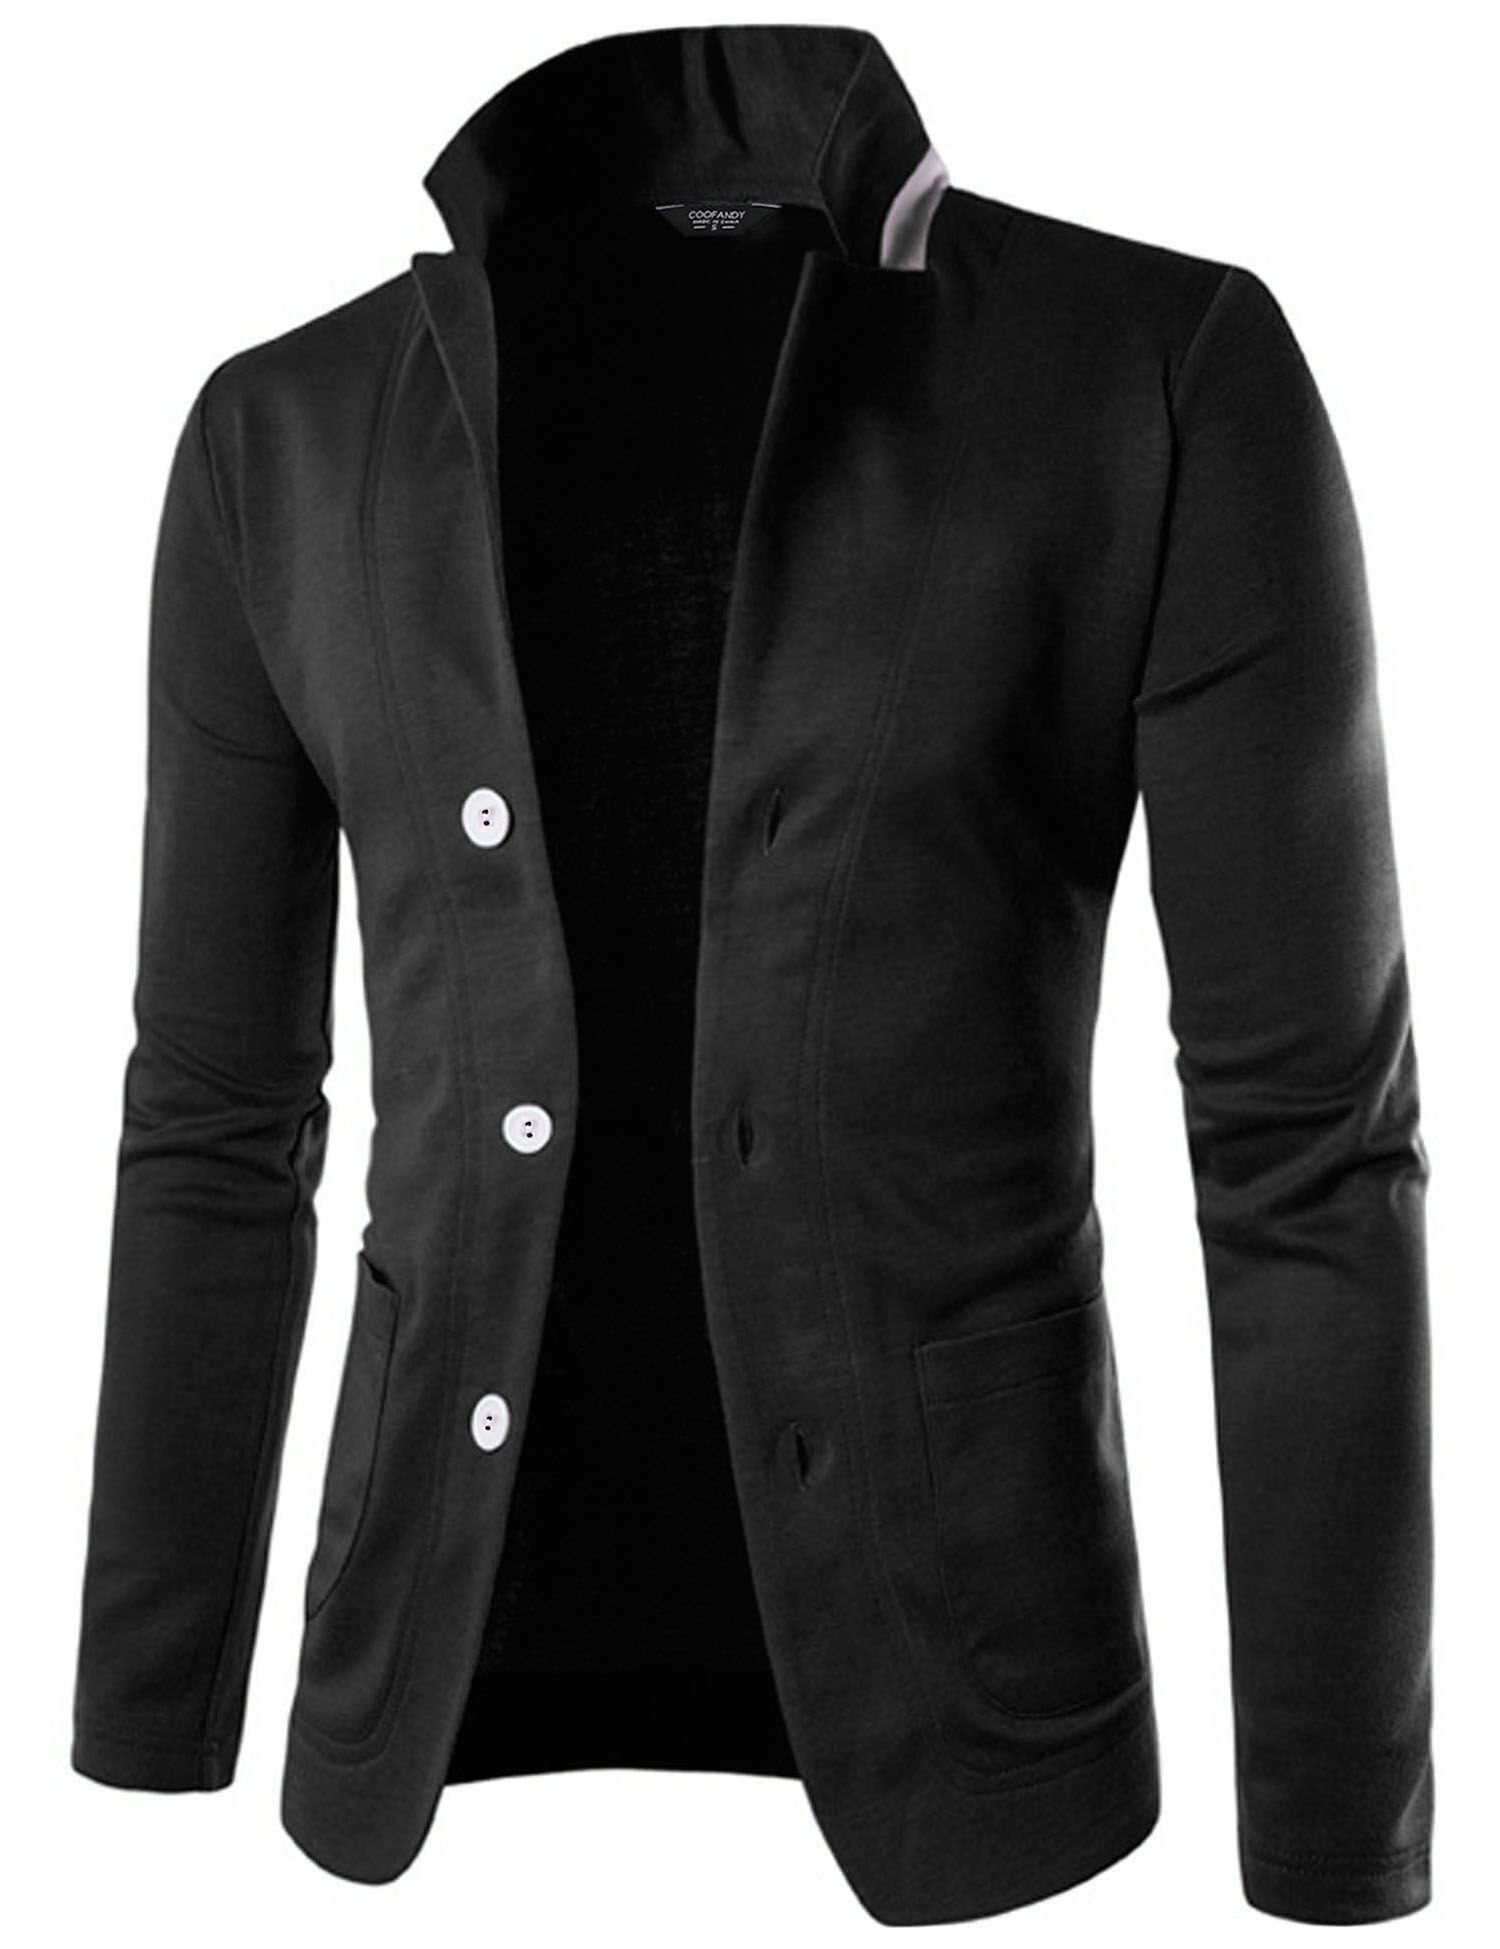 Coofandy Mens Casual Slim Fit Blazer 3 Button Suit Sport Coat Lightweight Jacket, Black, XX-Large by COOFANDY